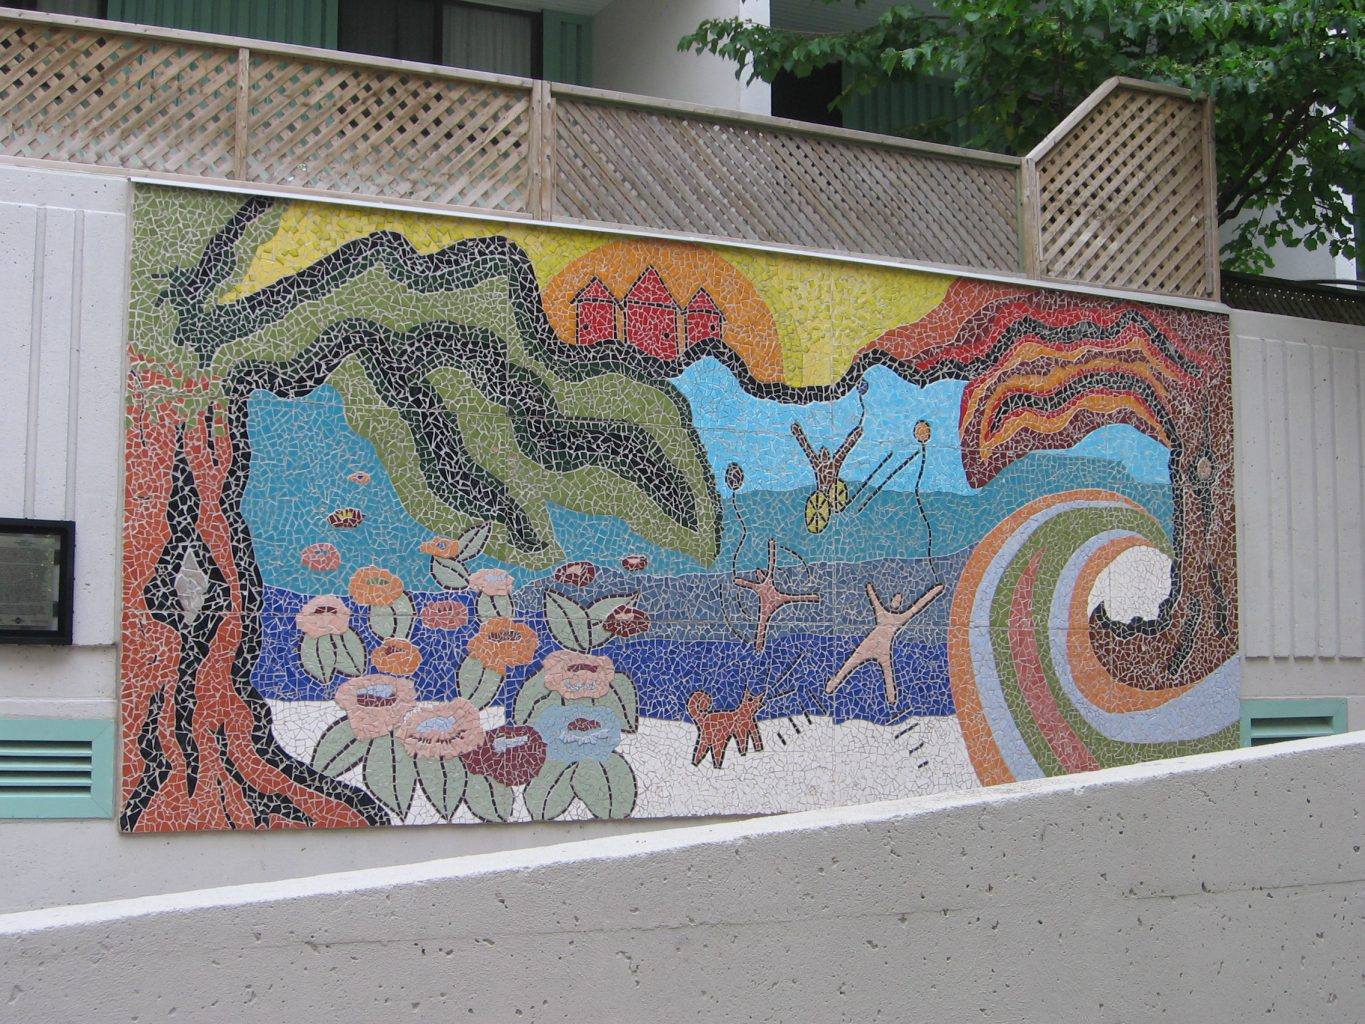 [Image description: A photograph of a full-length rectangular mural on a wall fence, depicting a tropical beach with sand, sun, waves, and a dog barking at people playing a game on the sand, including a person in a wheelchair]